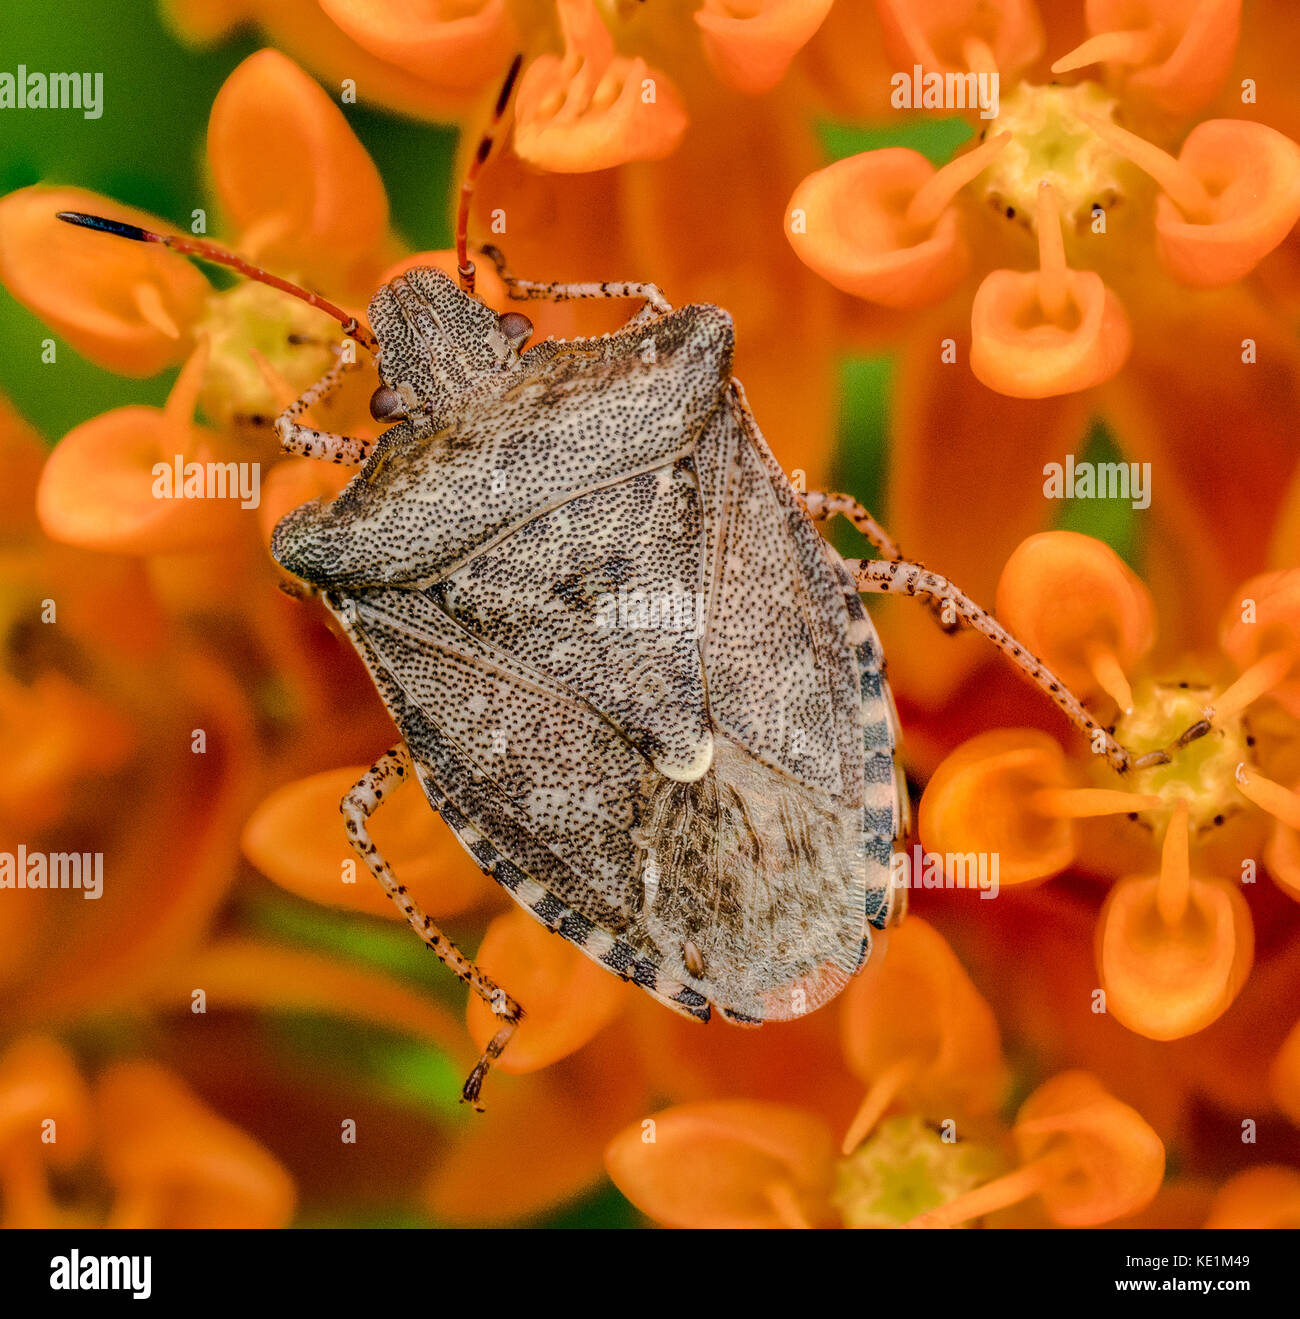 Spined Soldier Bug, Podisus spp. on butterfly weed, Asclepias tuberosa, Ontario, Canada Stock Photo